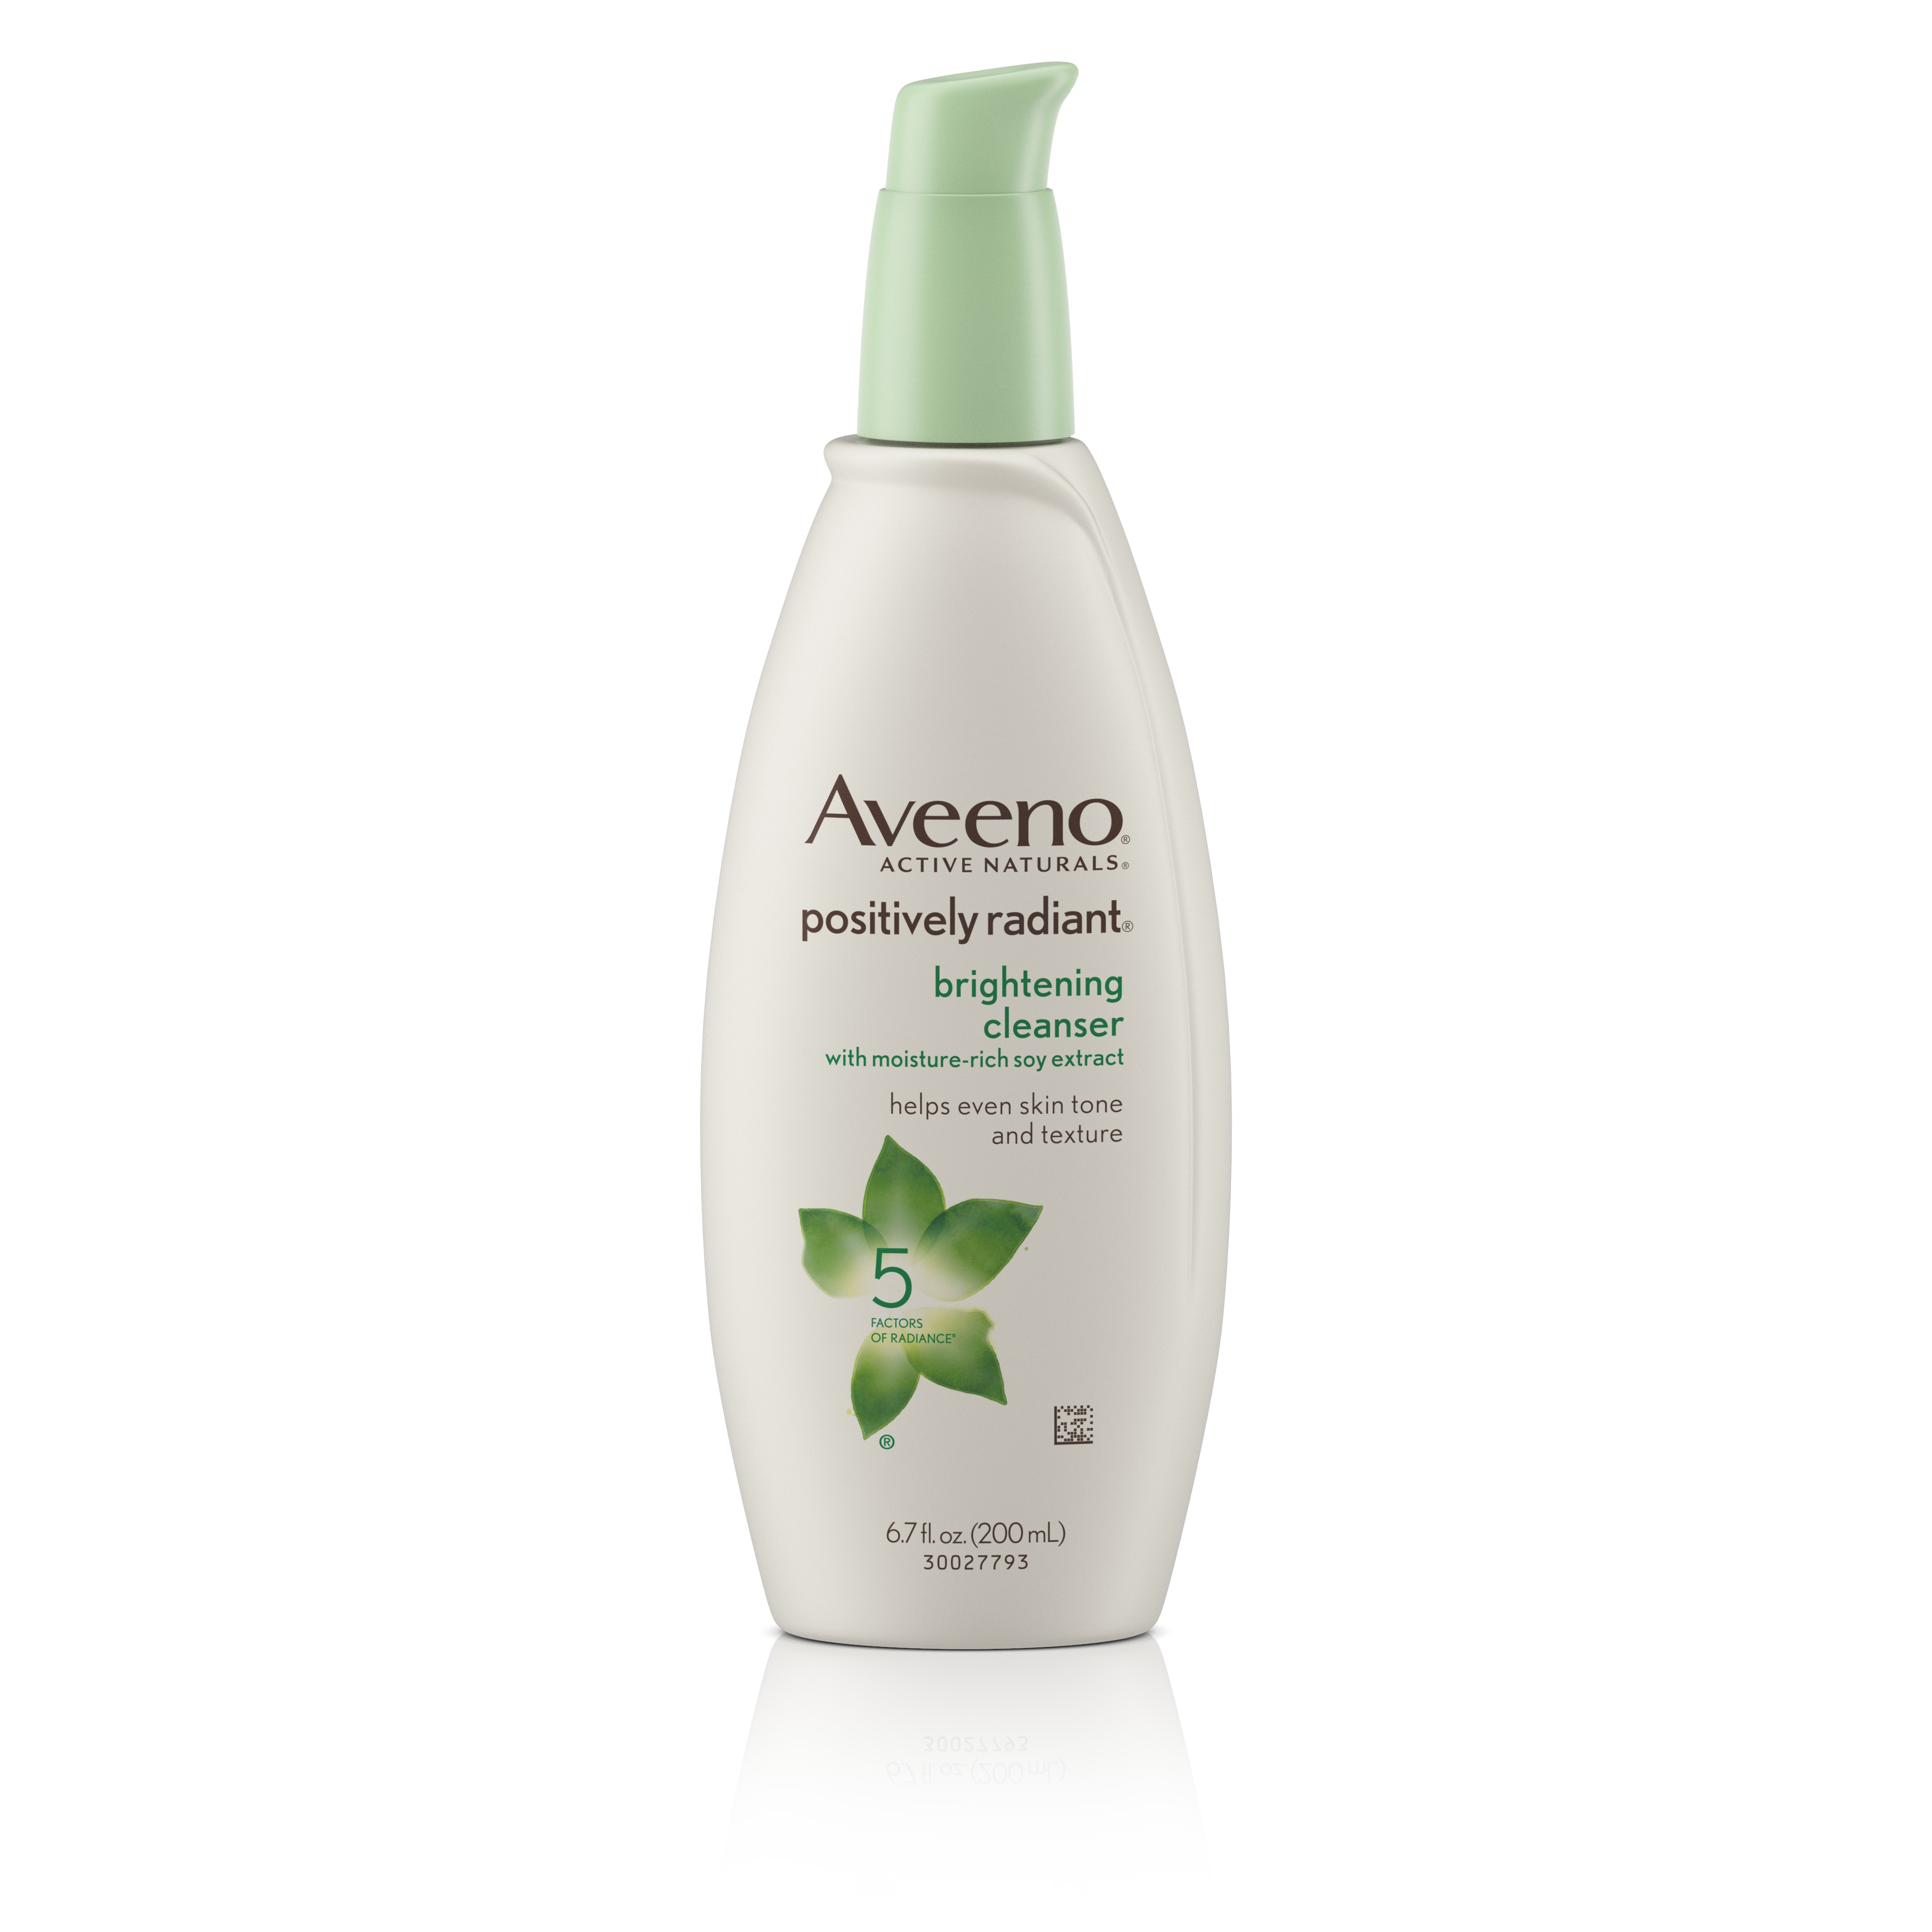 Aveeno Positively Radiant Brightening Cleanser For Face, 6.7 Fl. Oz - Walmart.com